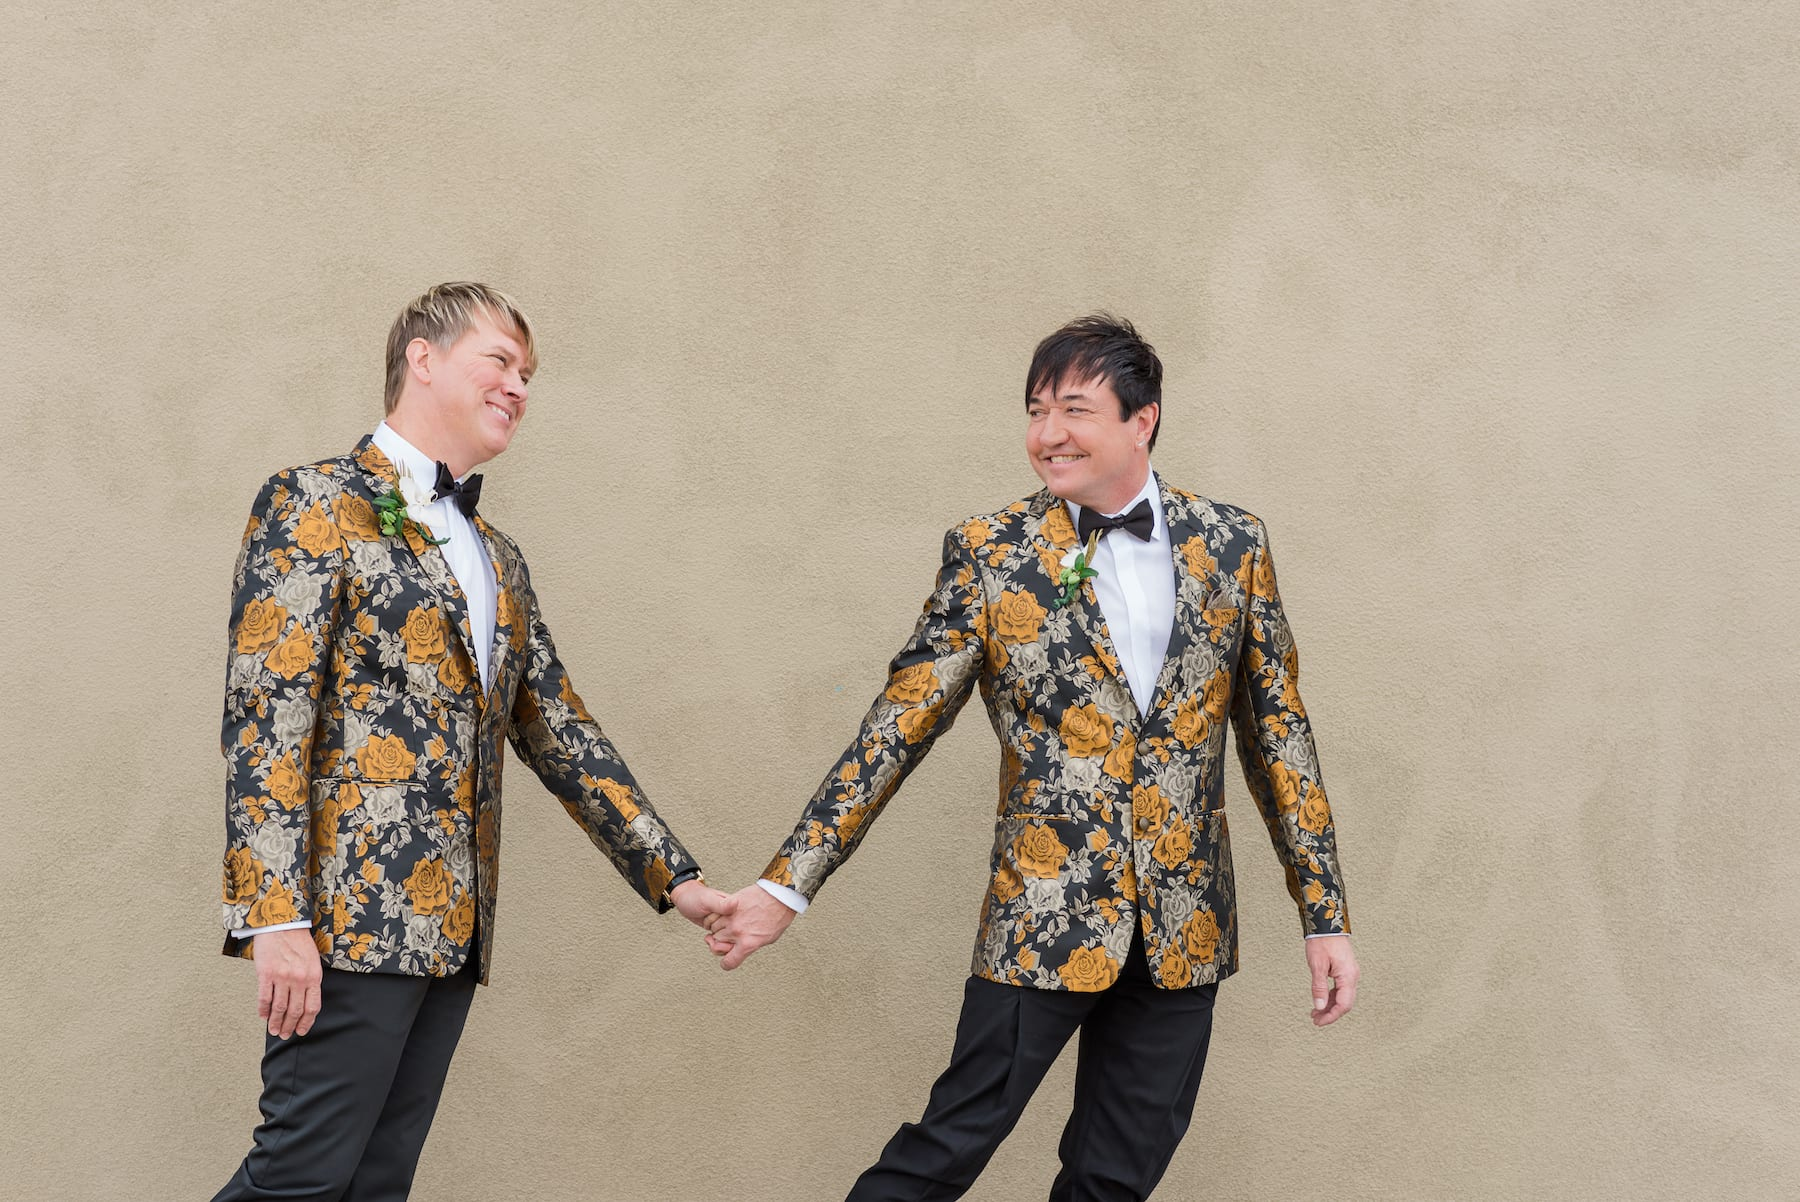 A colorful-suit-wearing couple holds hands and smiles in front of a tan backdrop